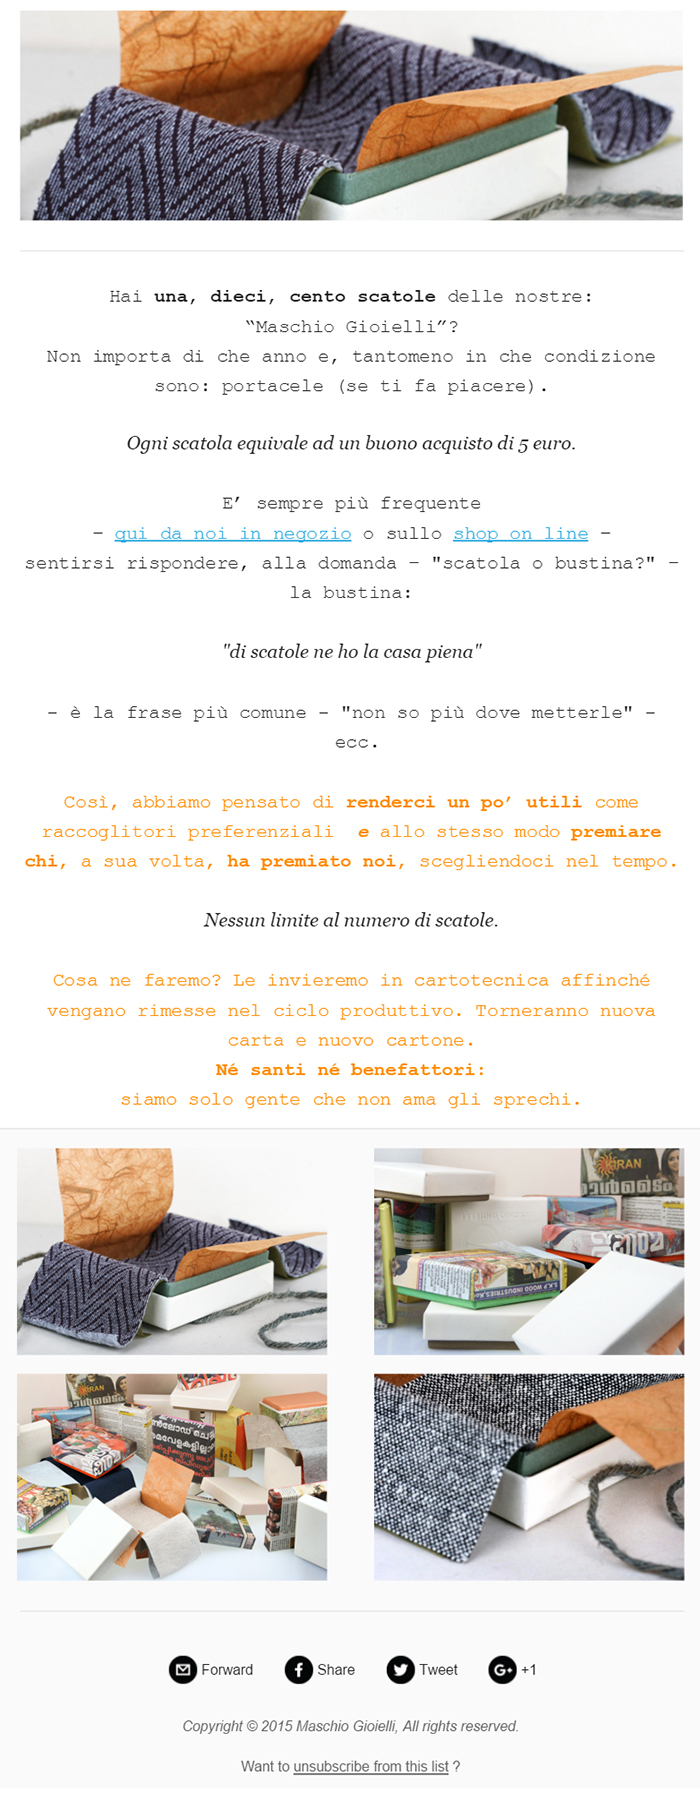 Newsletter-Scatole-Piene